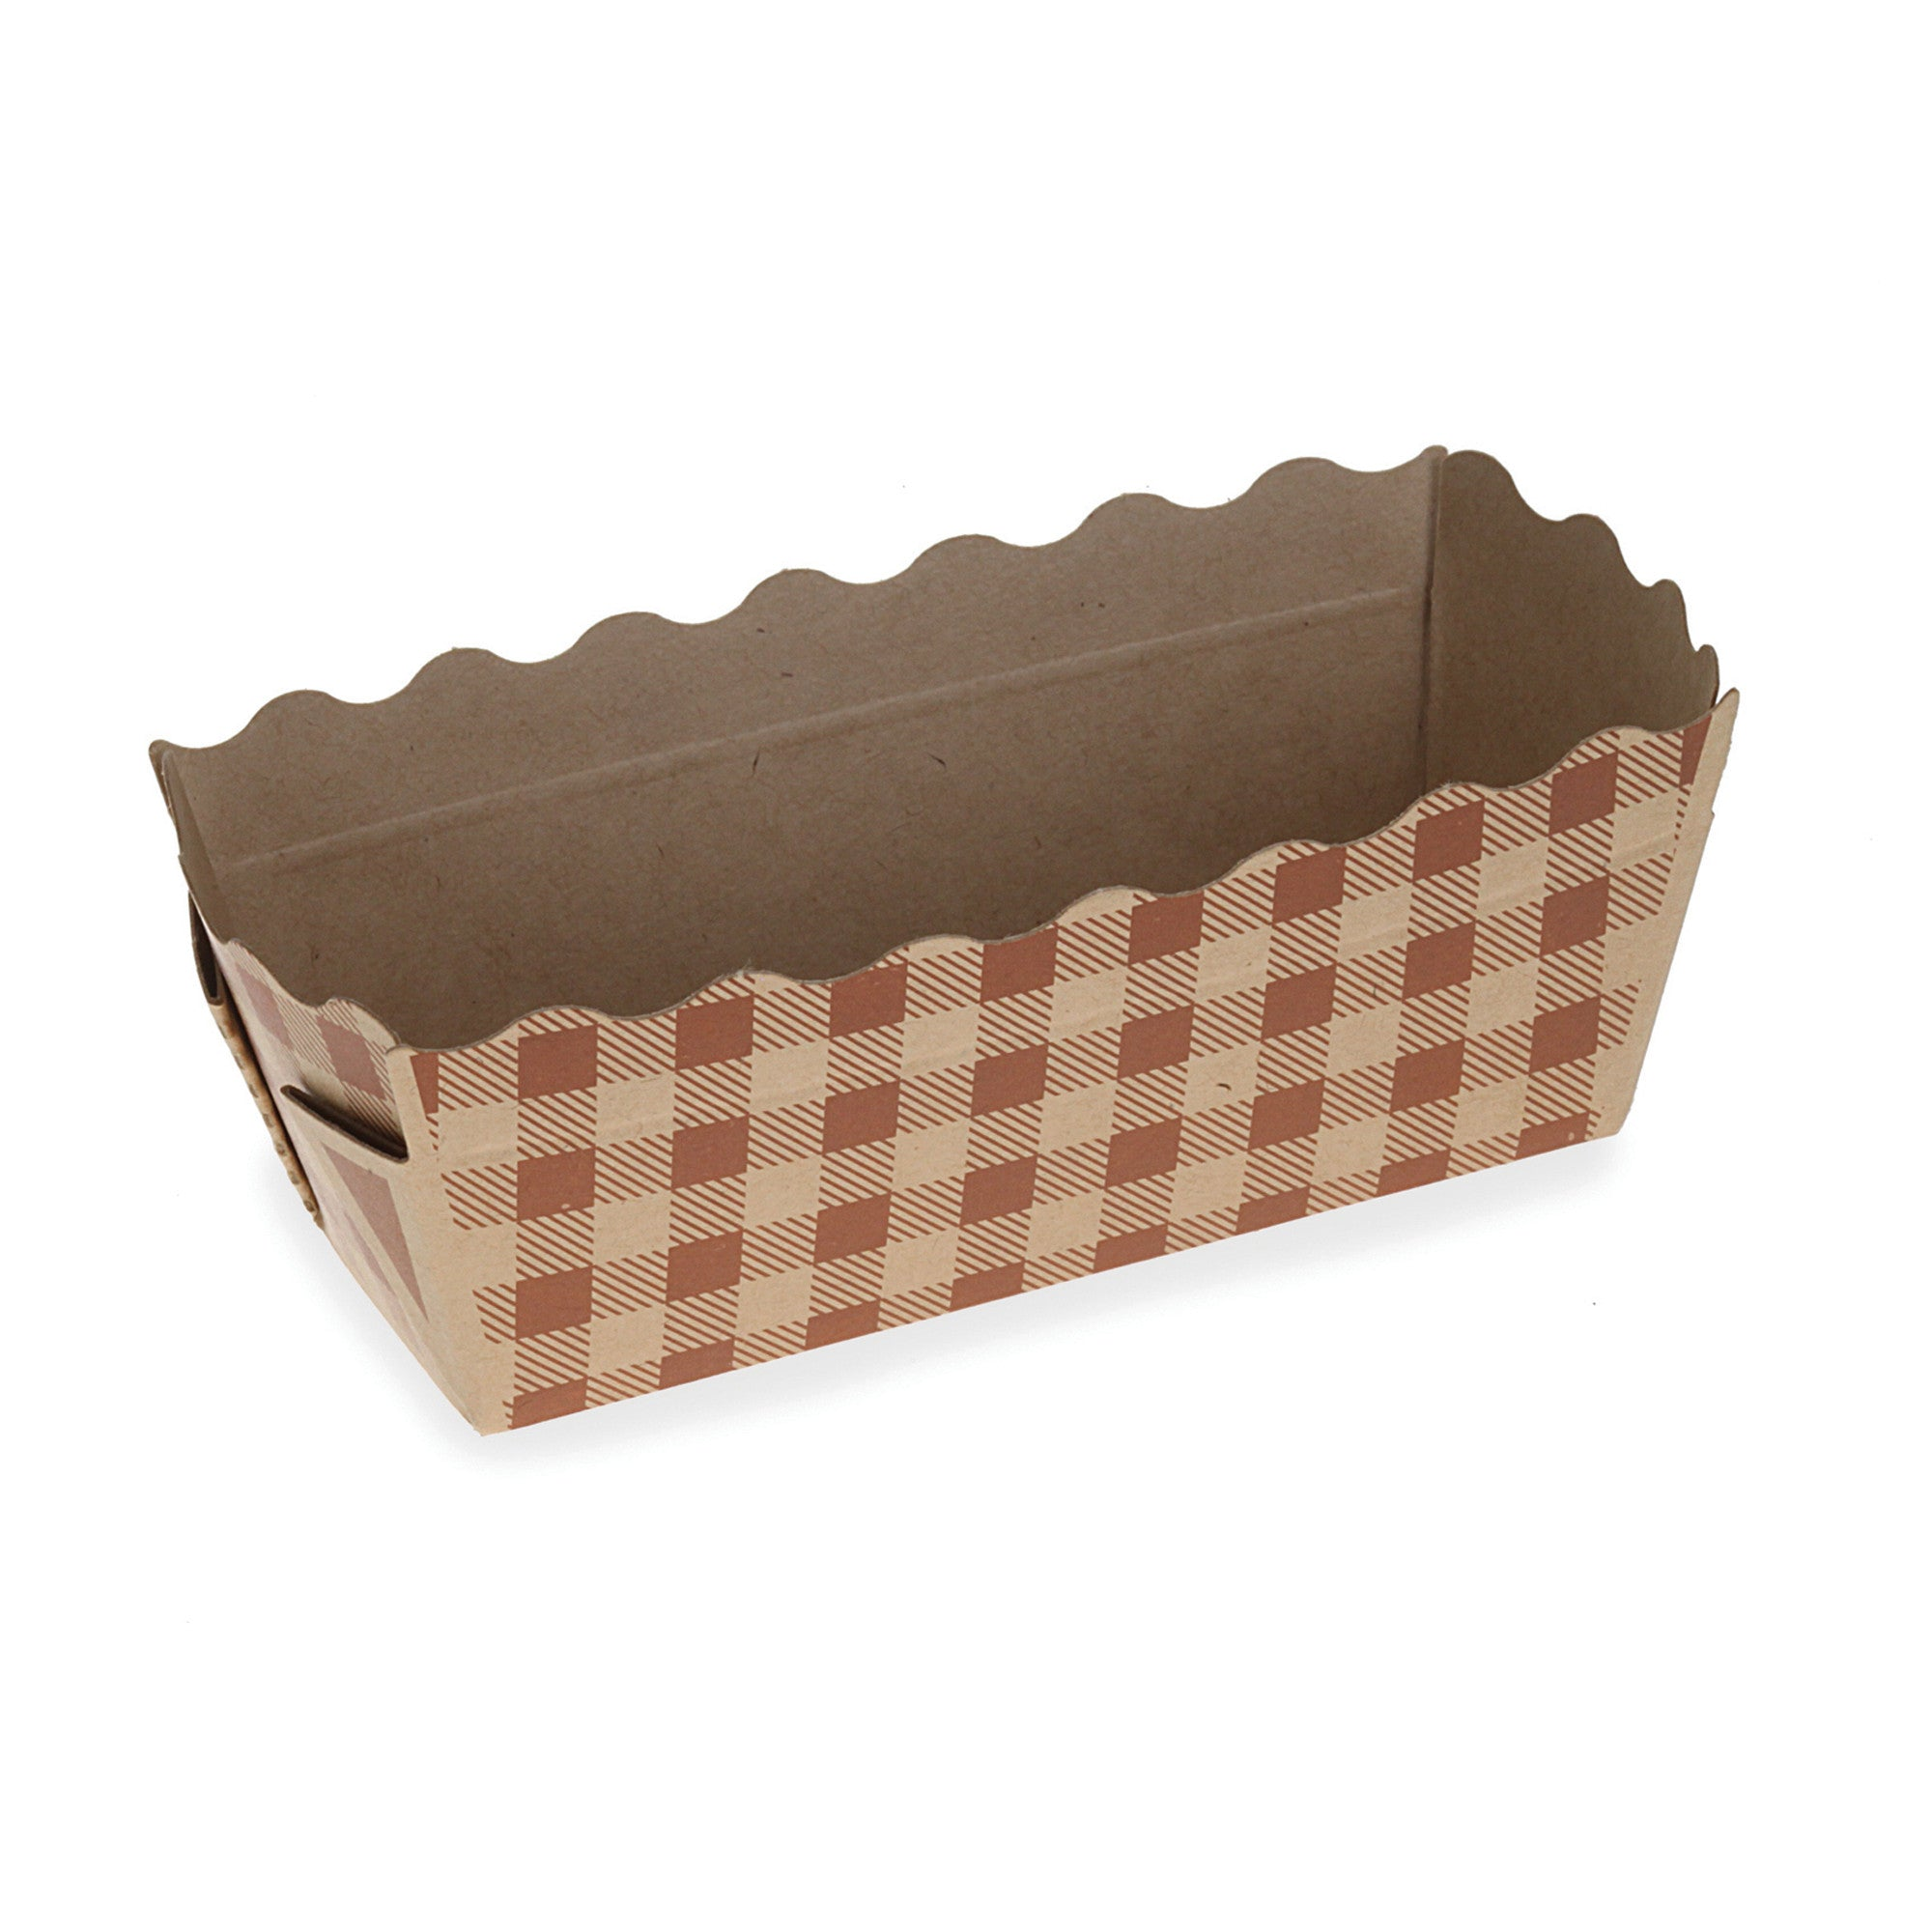 Single Serve Loaf Pans, BT8143 - Welcome Home Brands